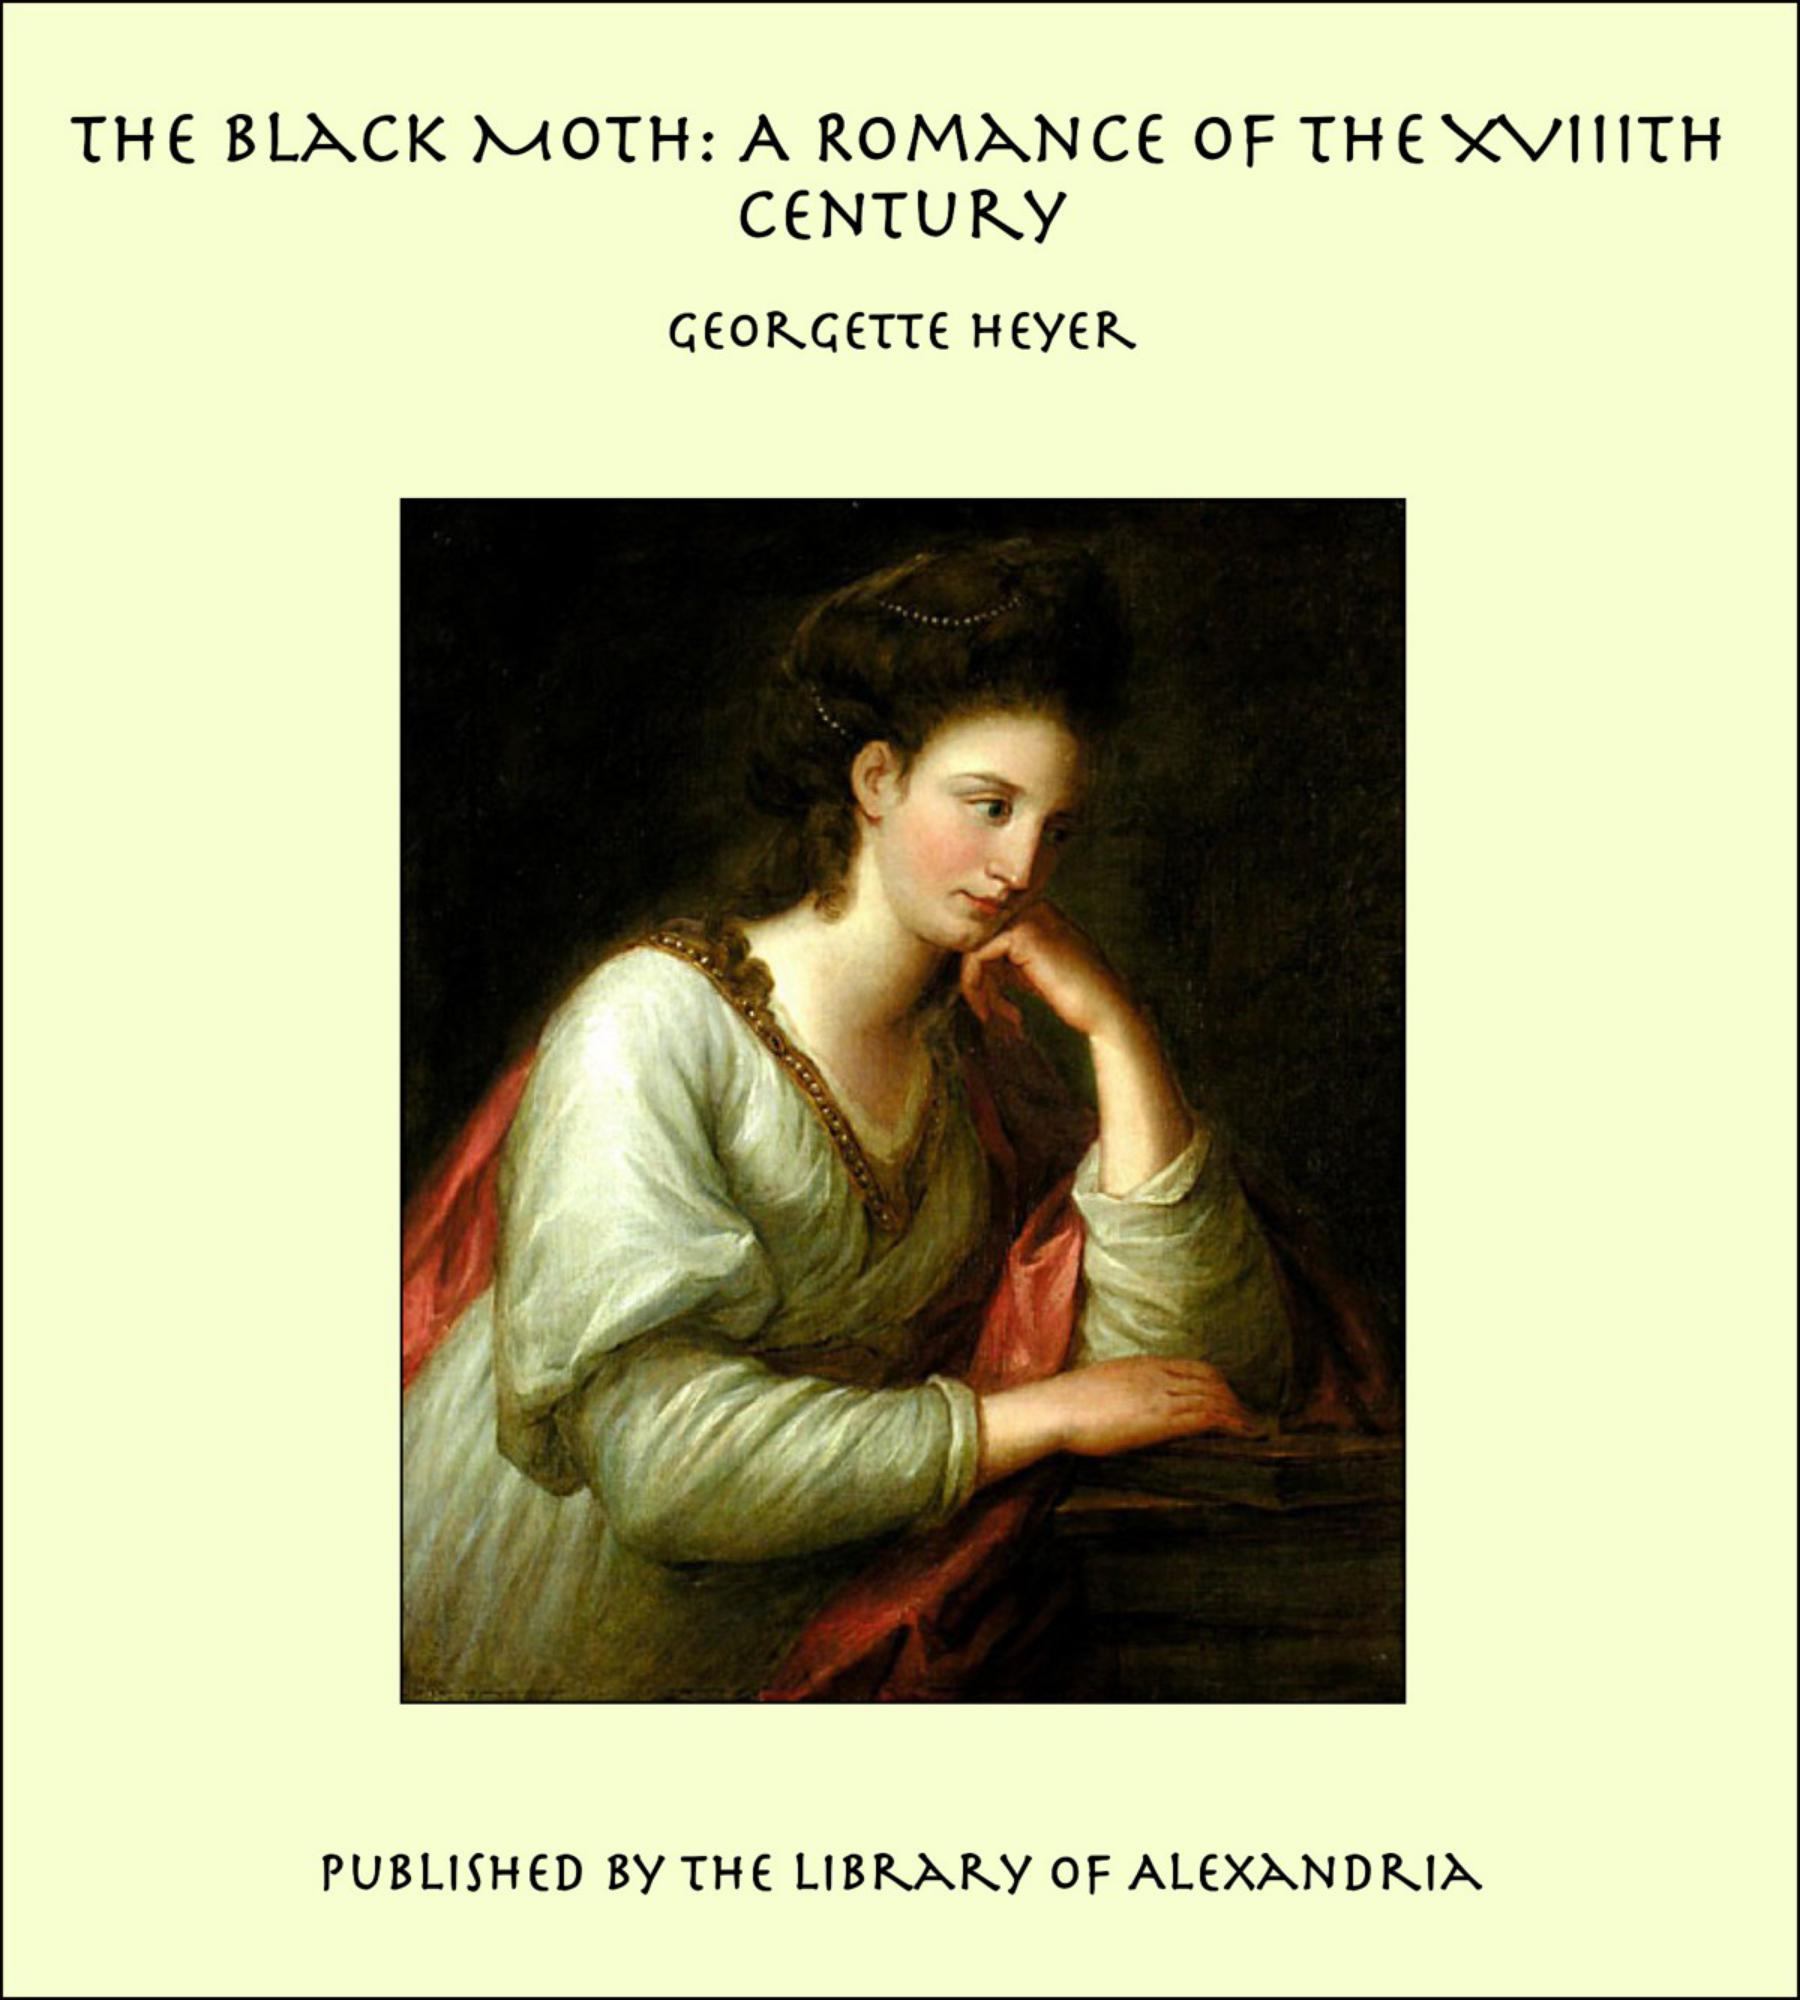 The Black Moth: A Romance of the XVIIIth Century